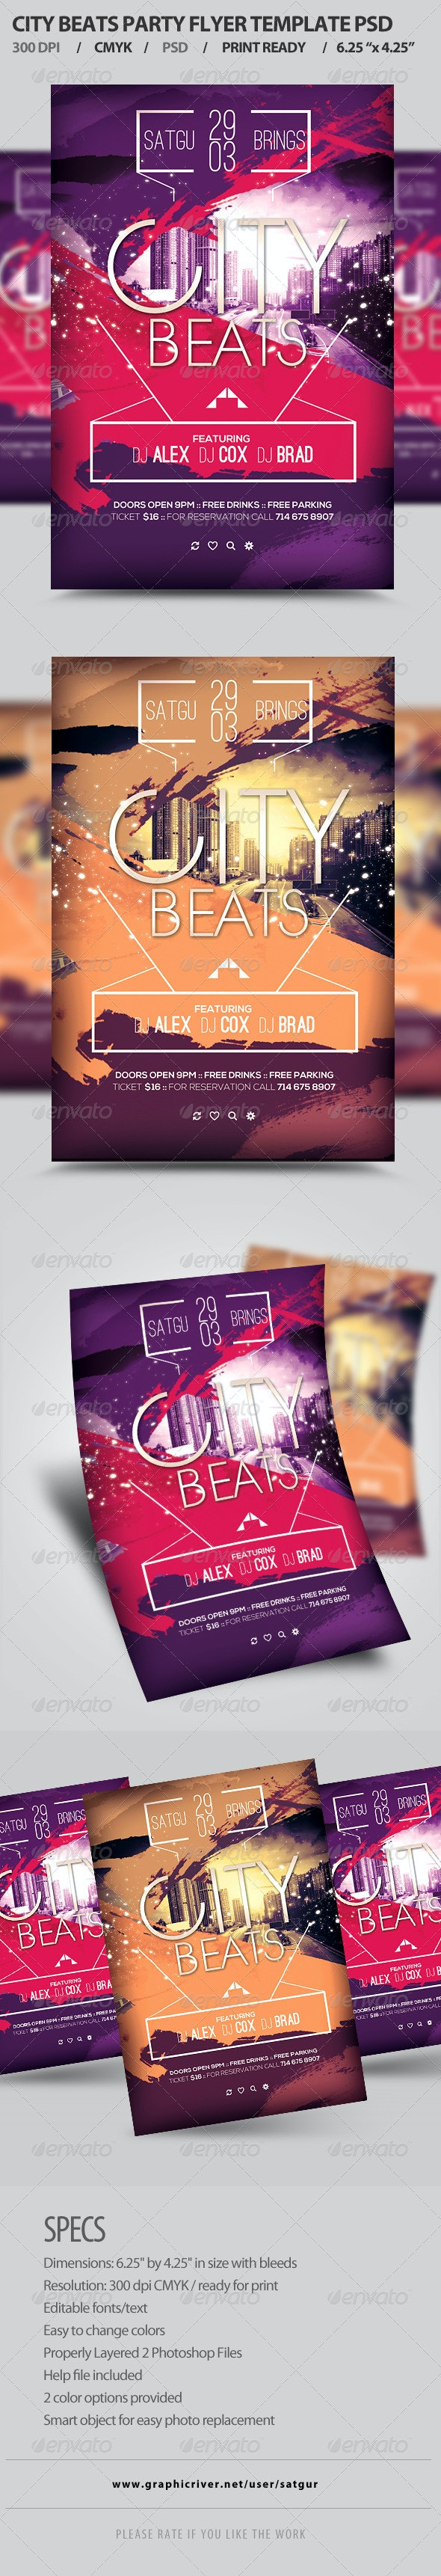 City Beats Party Flyer Template PSD - Clubs & Parties Events